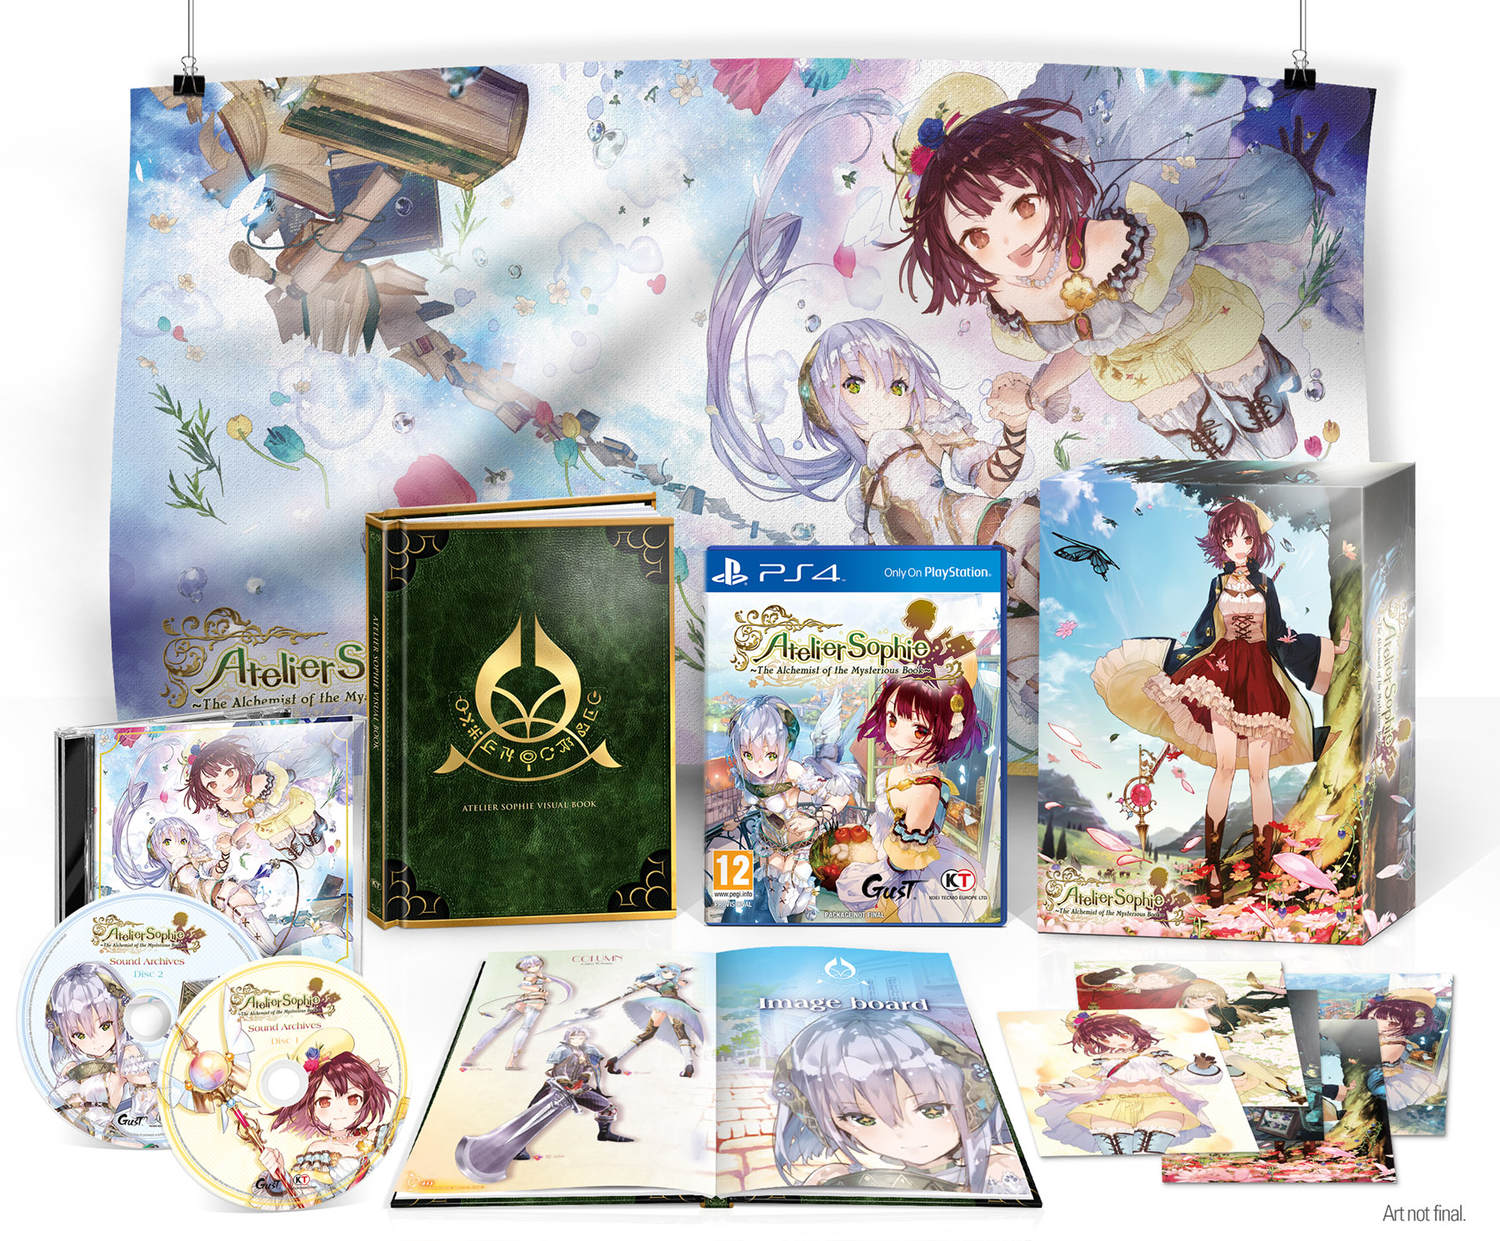 atelier-sophie-the-alchemist-of-the-mysteriois-book-11